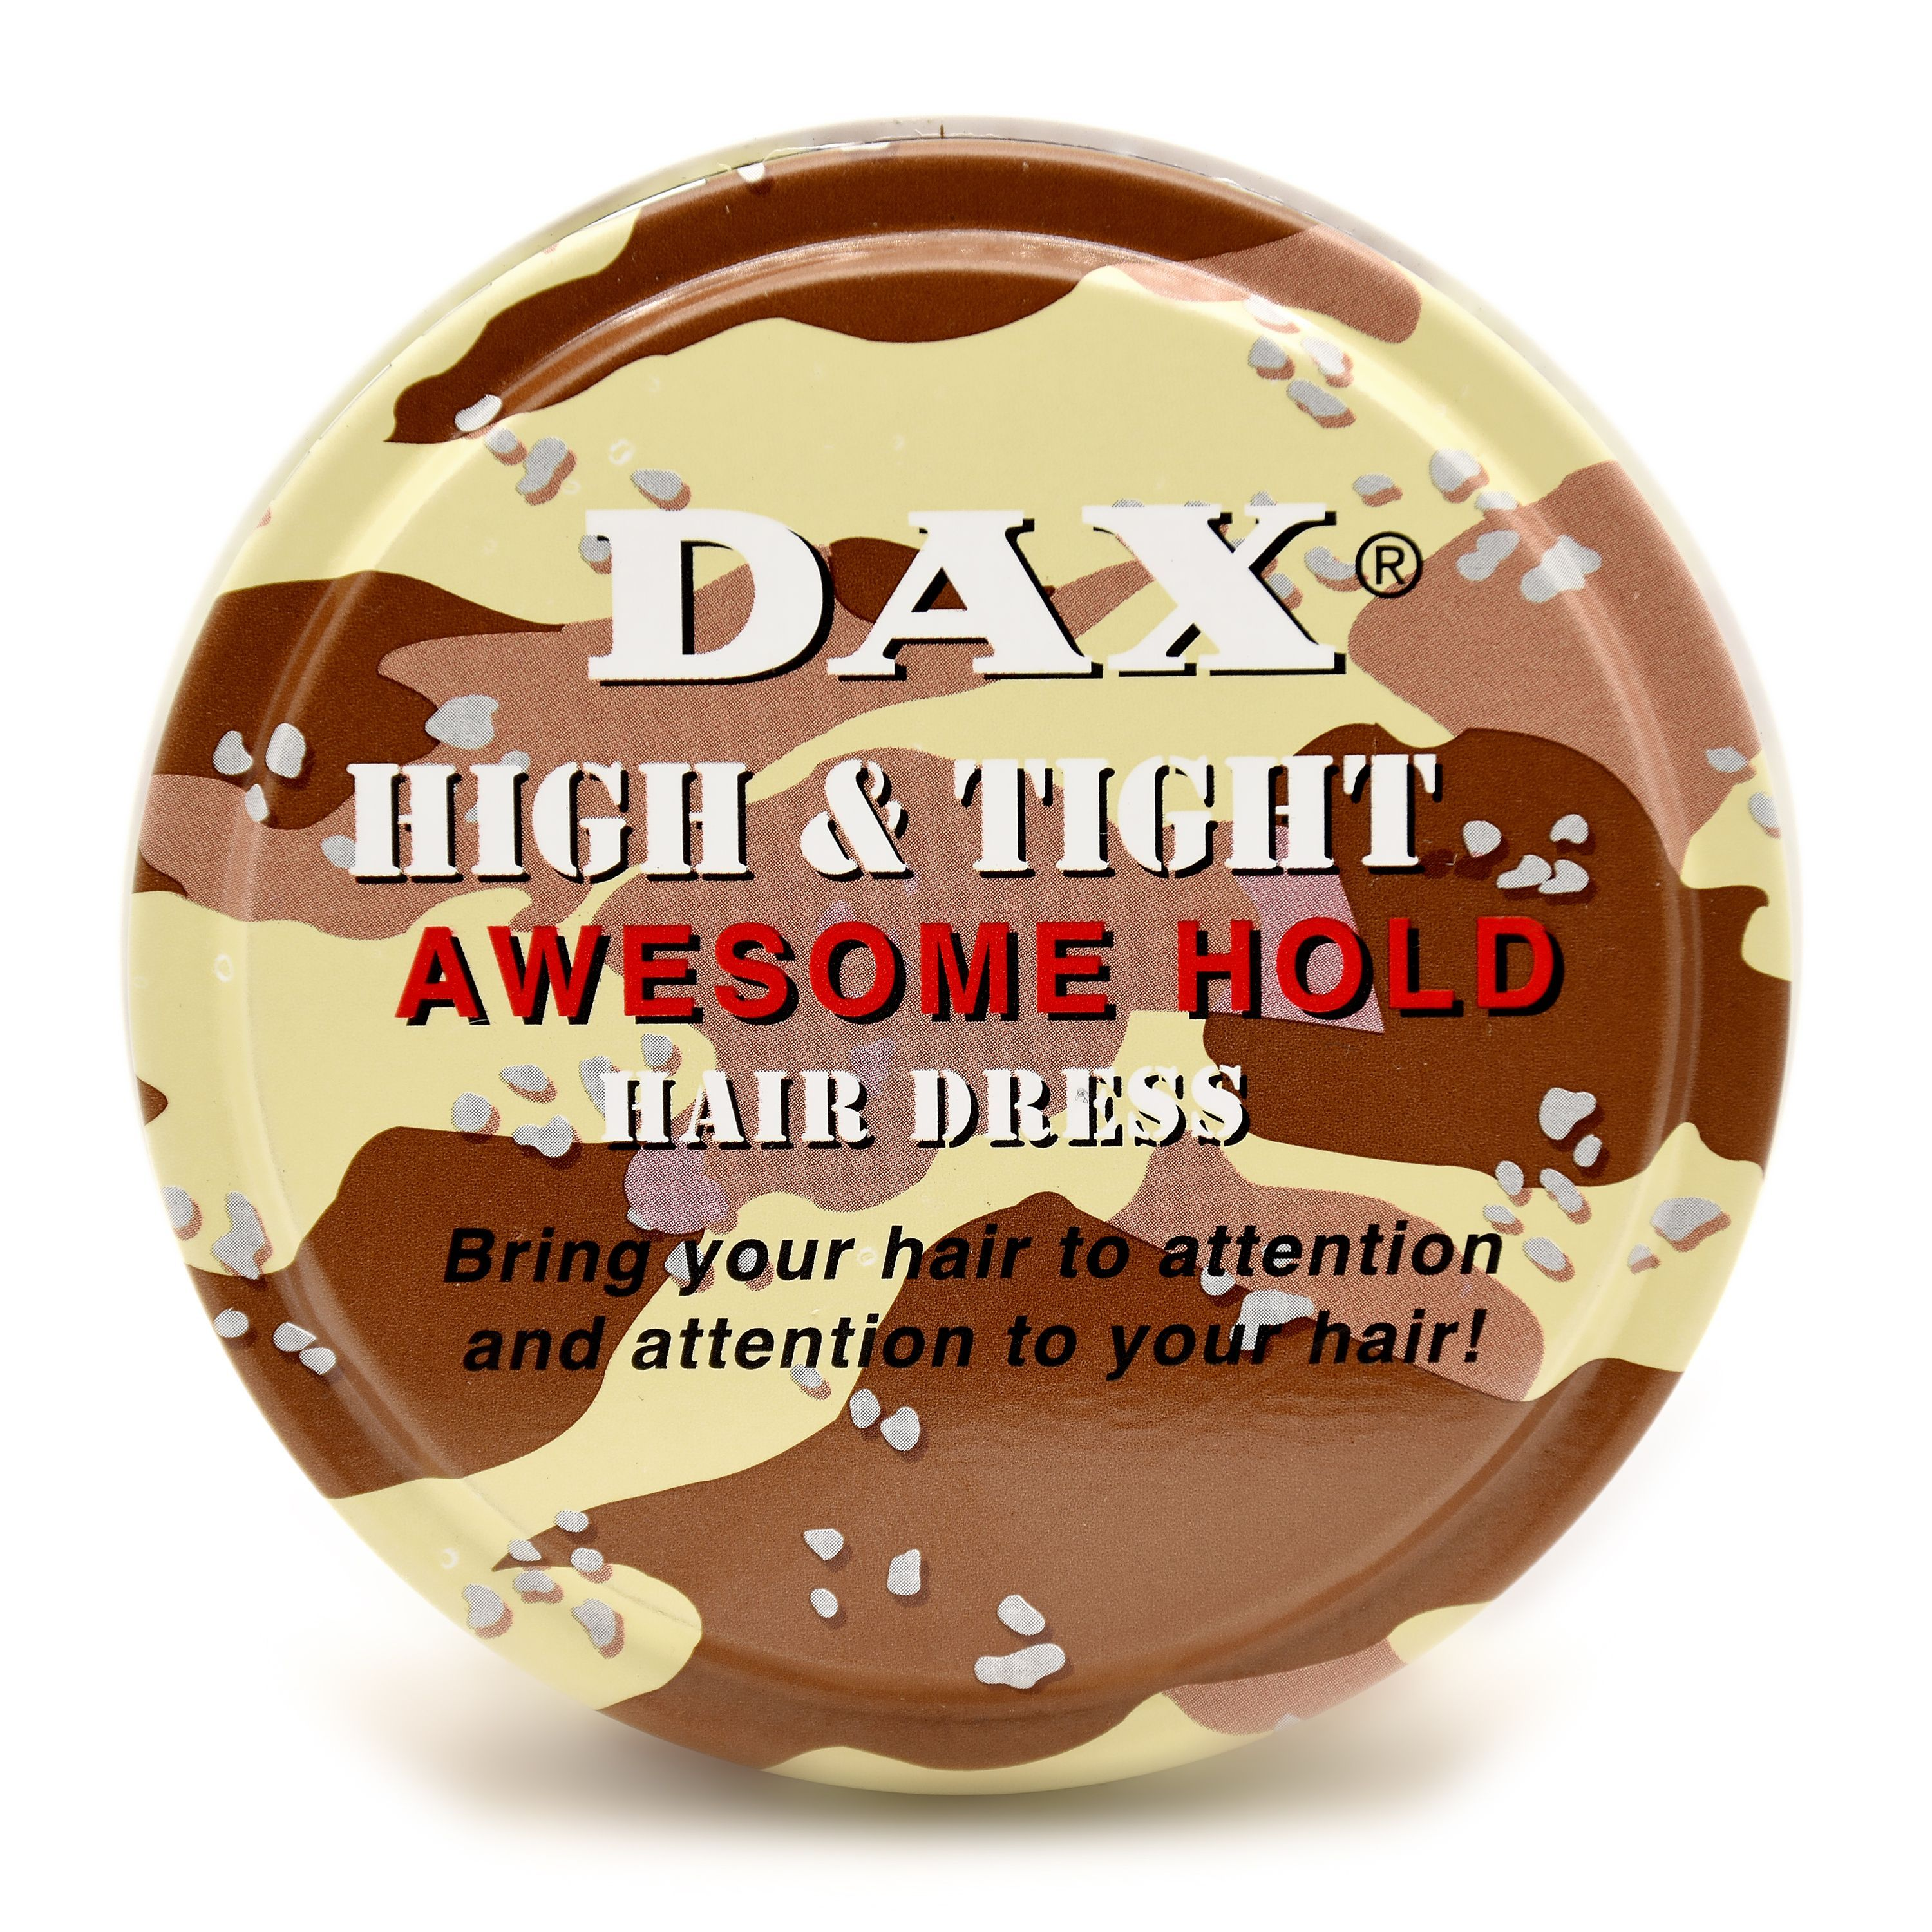 DAX High & Tight : Awesome Hold - 3.5oz